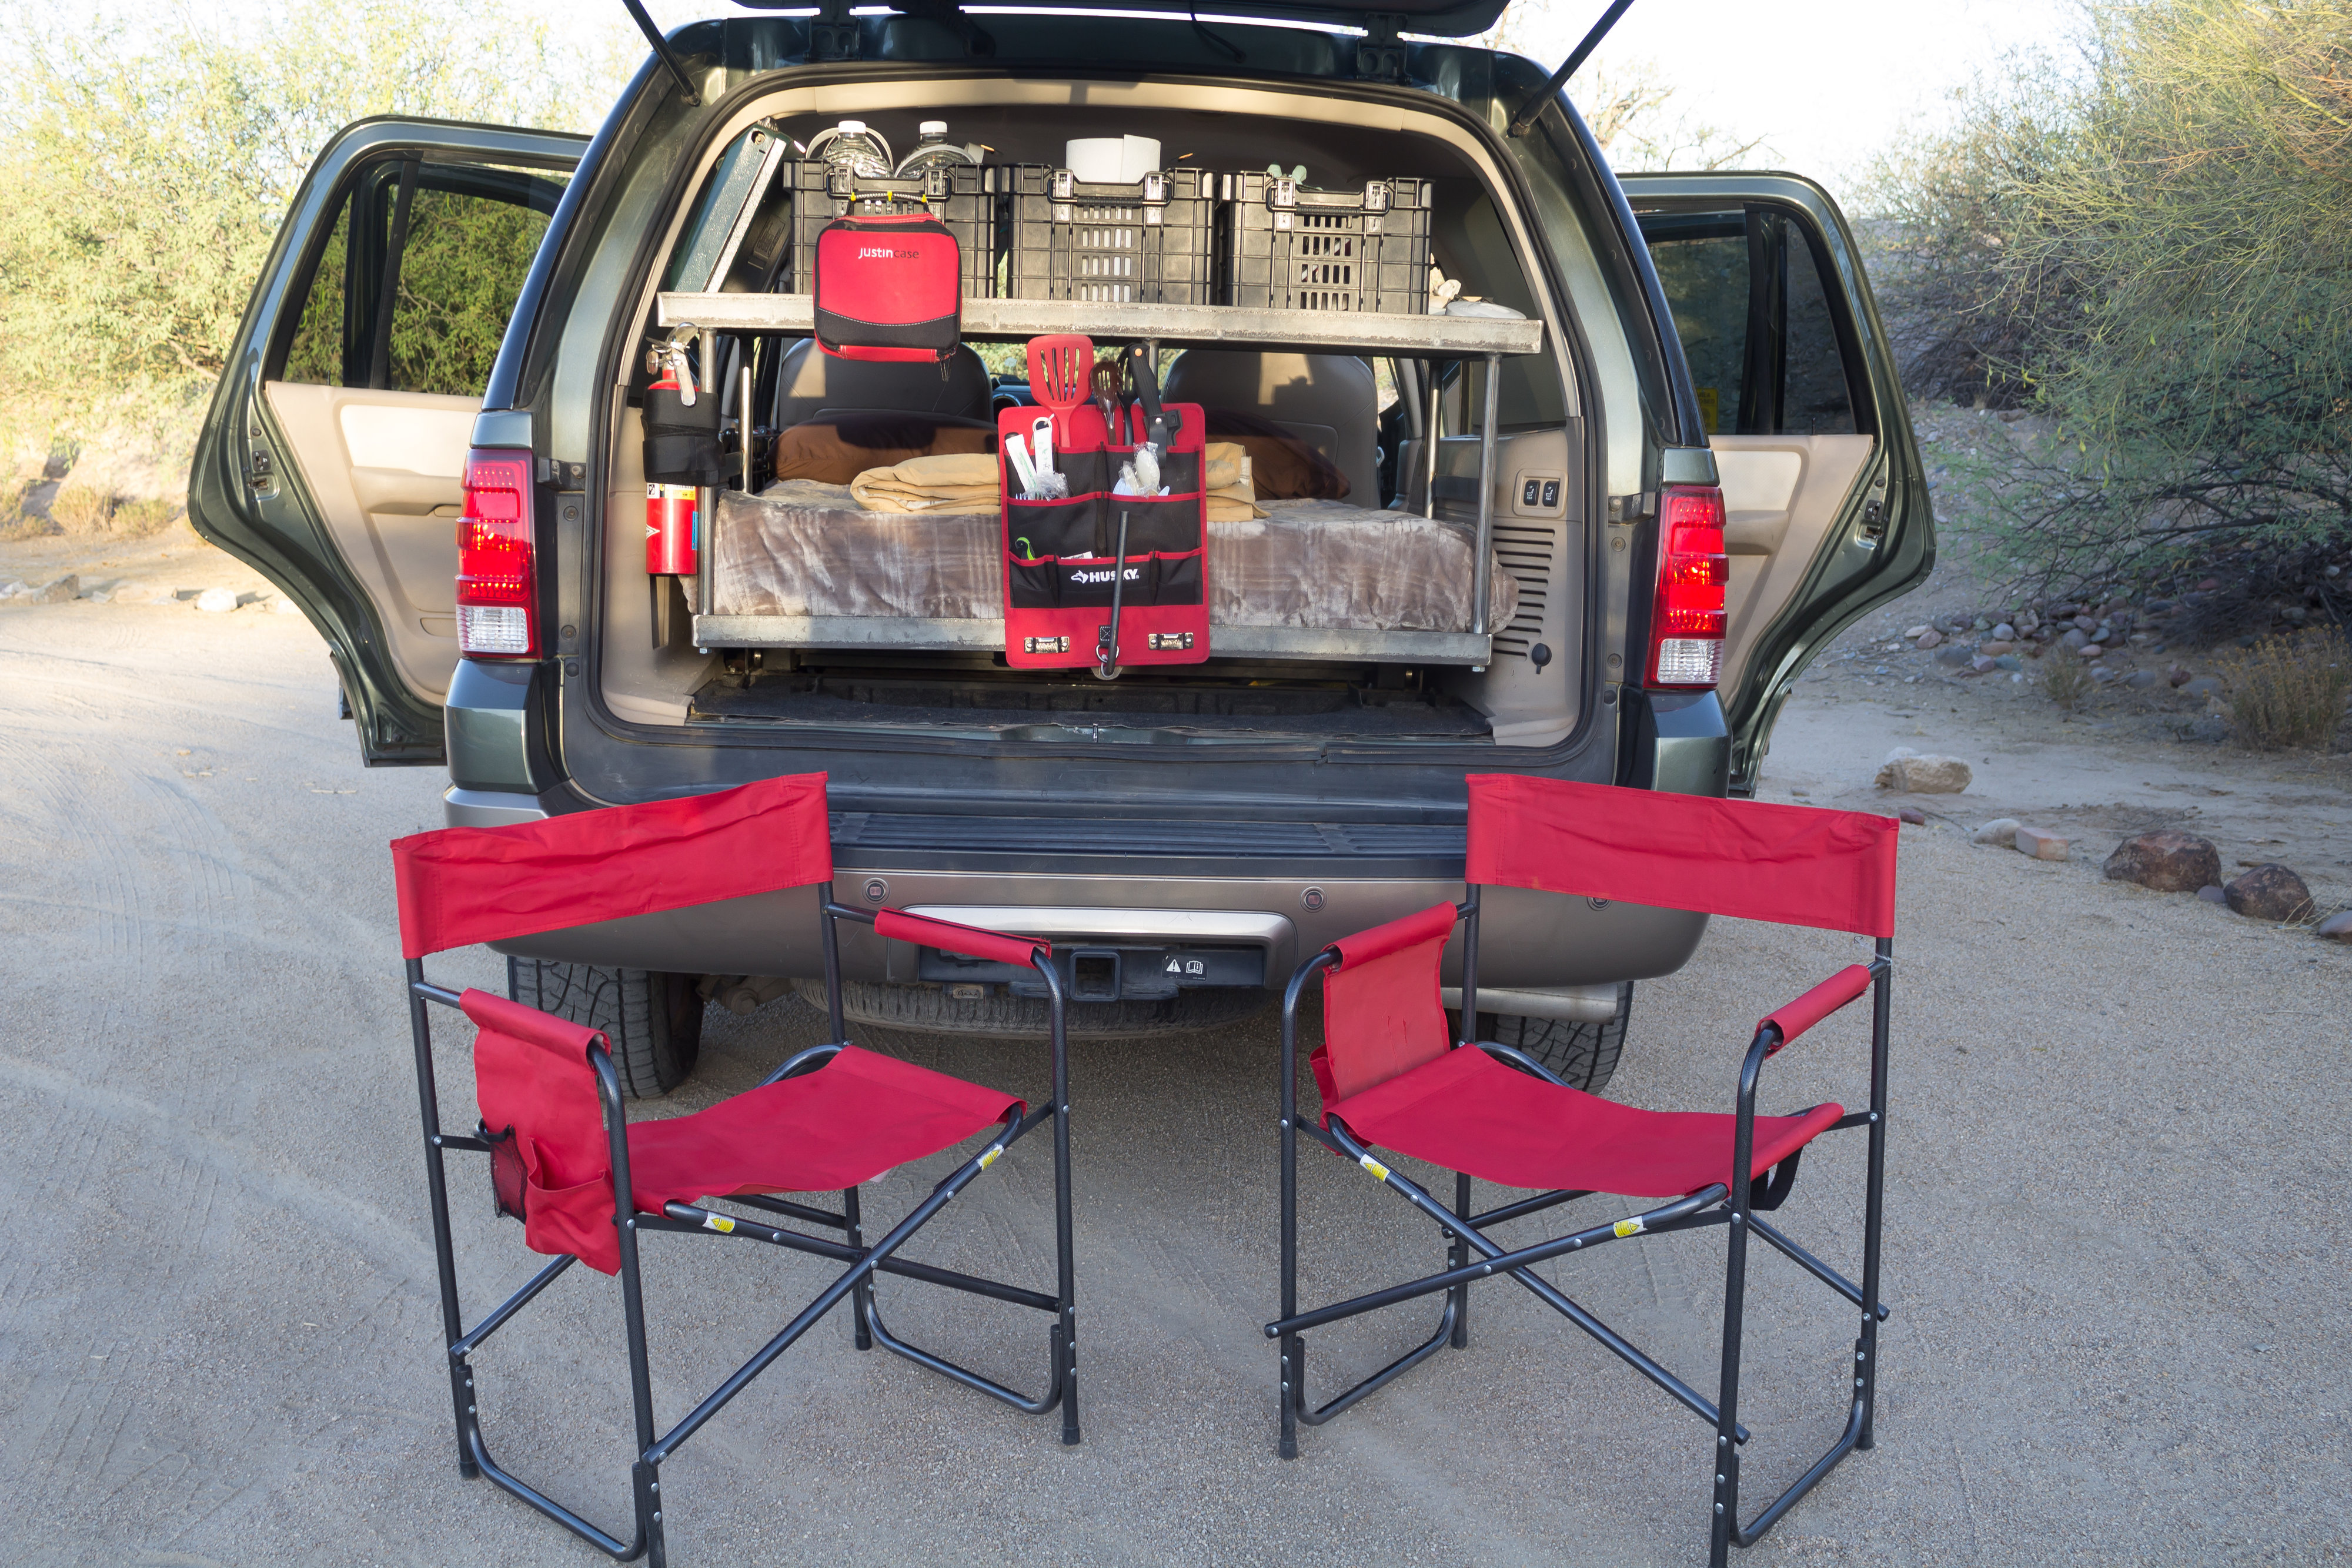 """A good shot of all our cooking gear, our chairs and table set up, and the """"everything in one place"""" concept we were going for.. Ford Expedition Camper Van Roadtrip & 4x4 Camper Van 2003"""